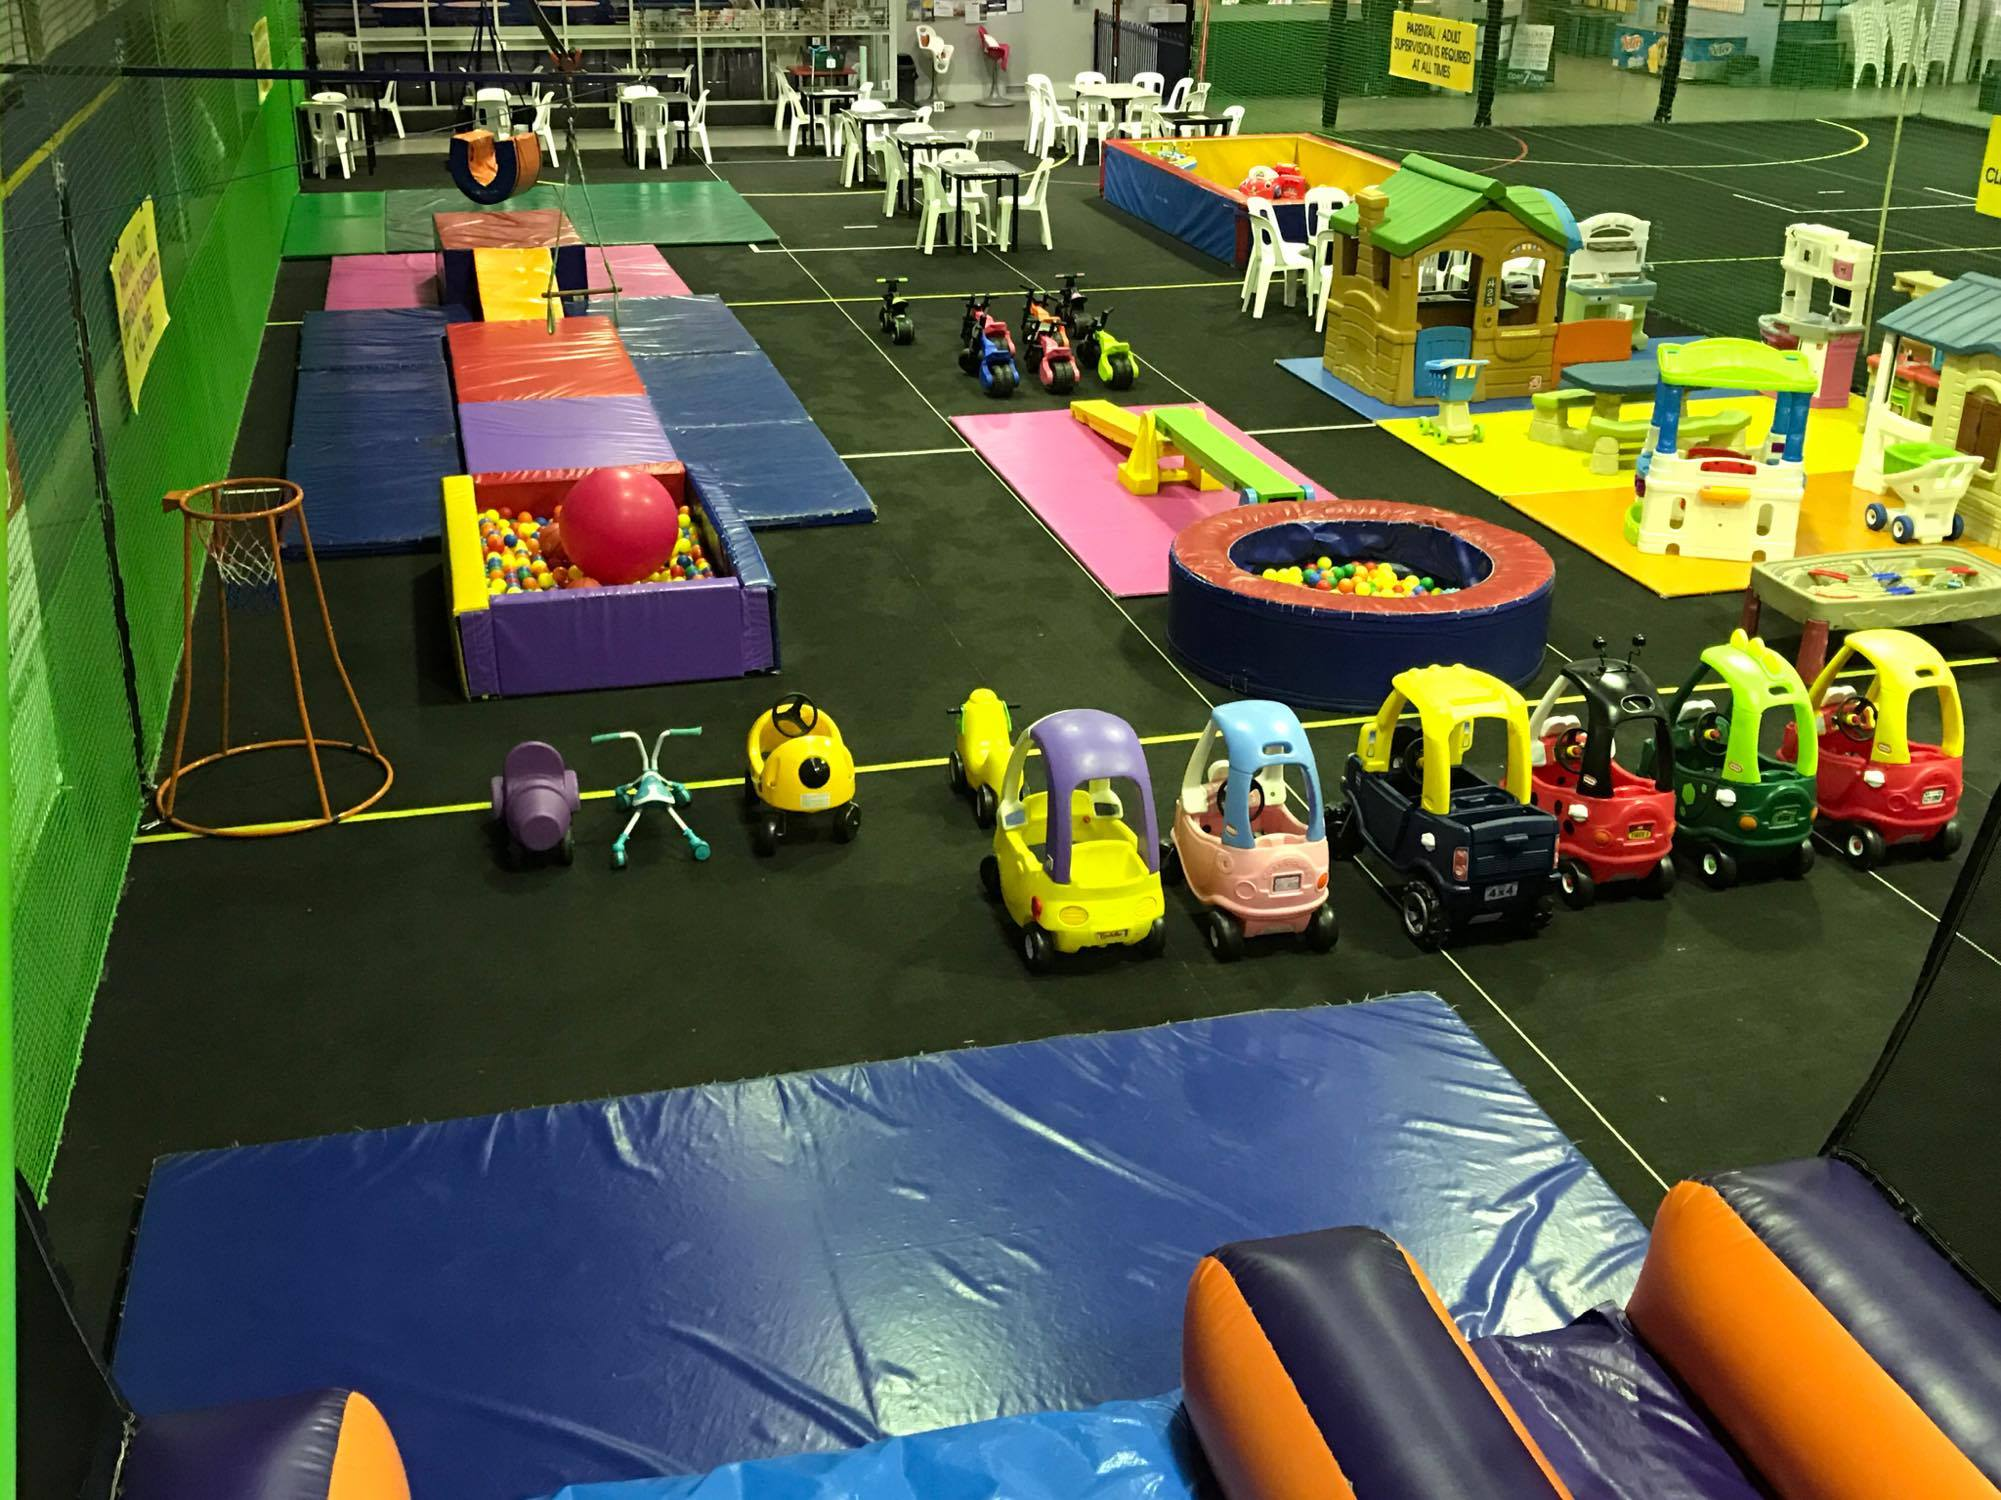 Childrens Birthday And Sports Parties Bayside Melbourne - Childrens birthday party ideas cheltenham